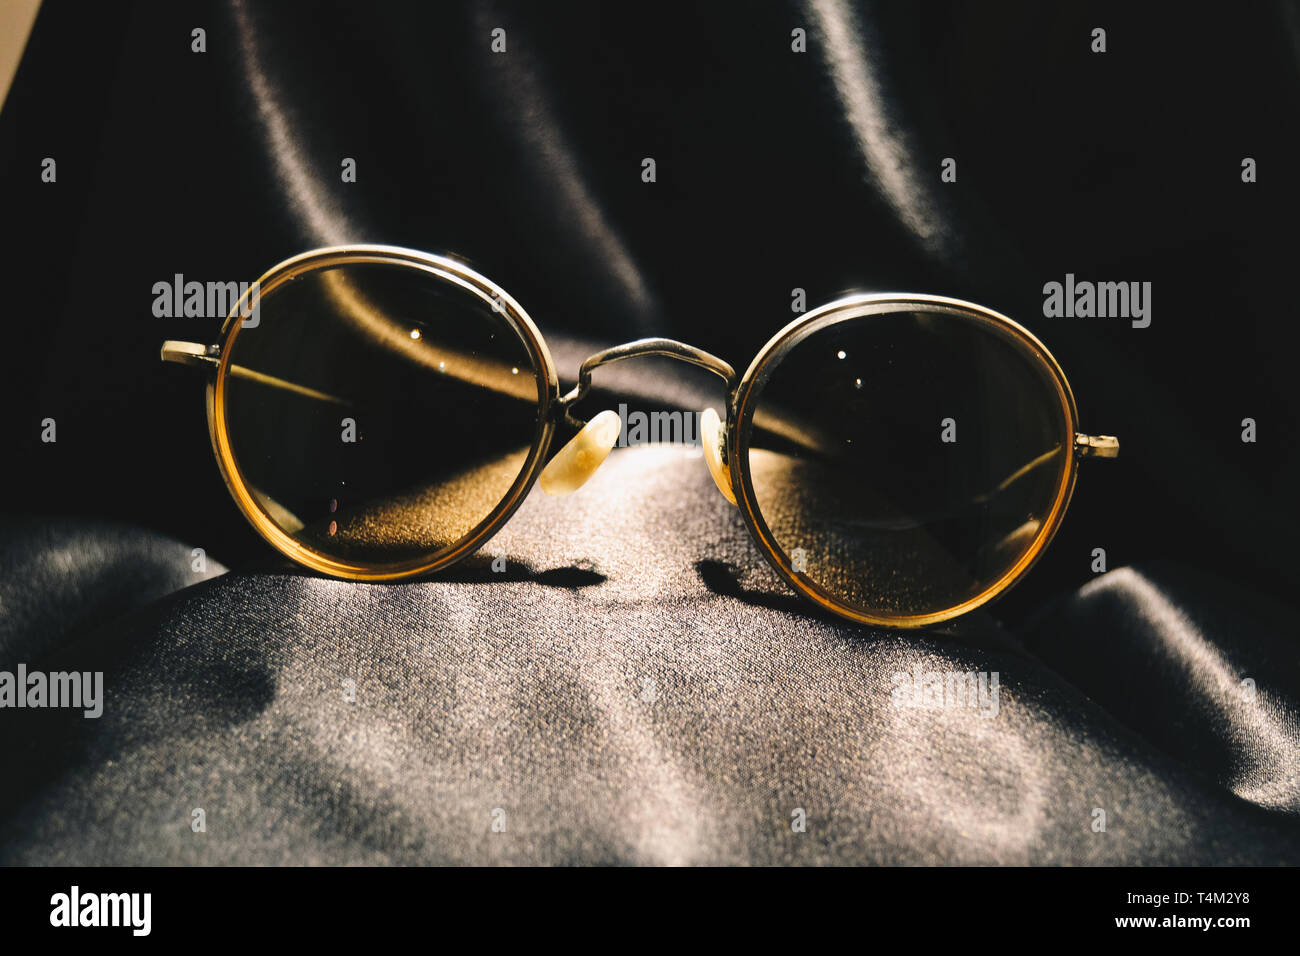 Round Eyeglasses High Resolution Stock Photography And Images Alamy